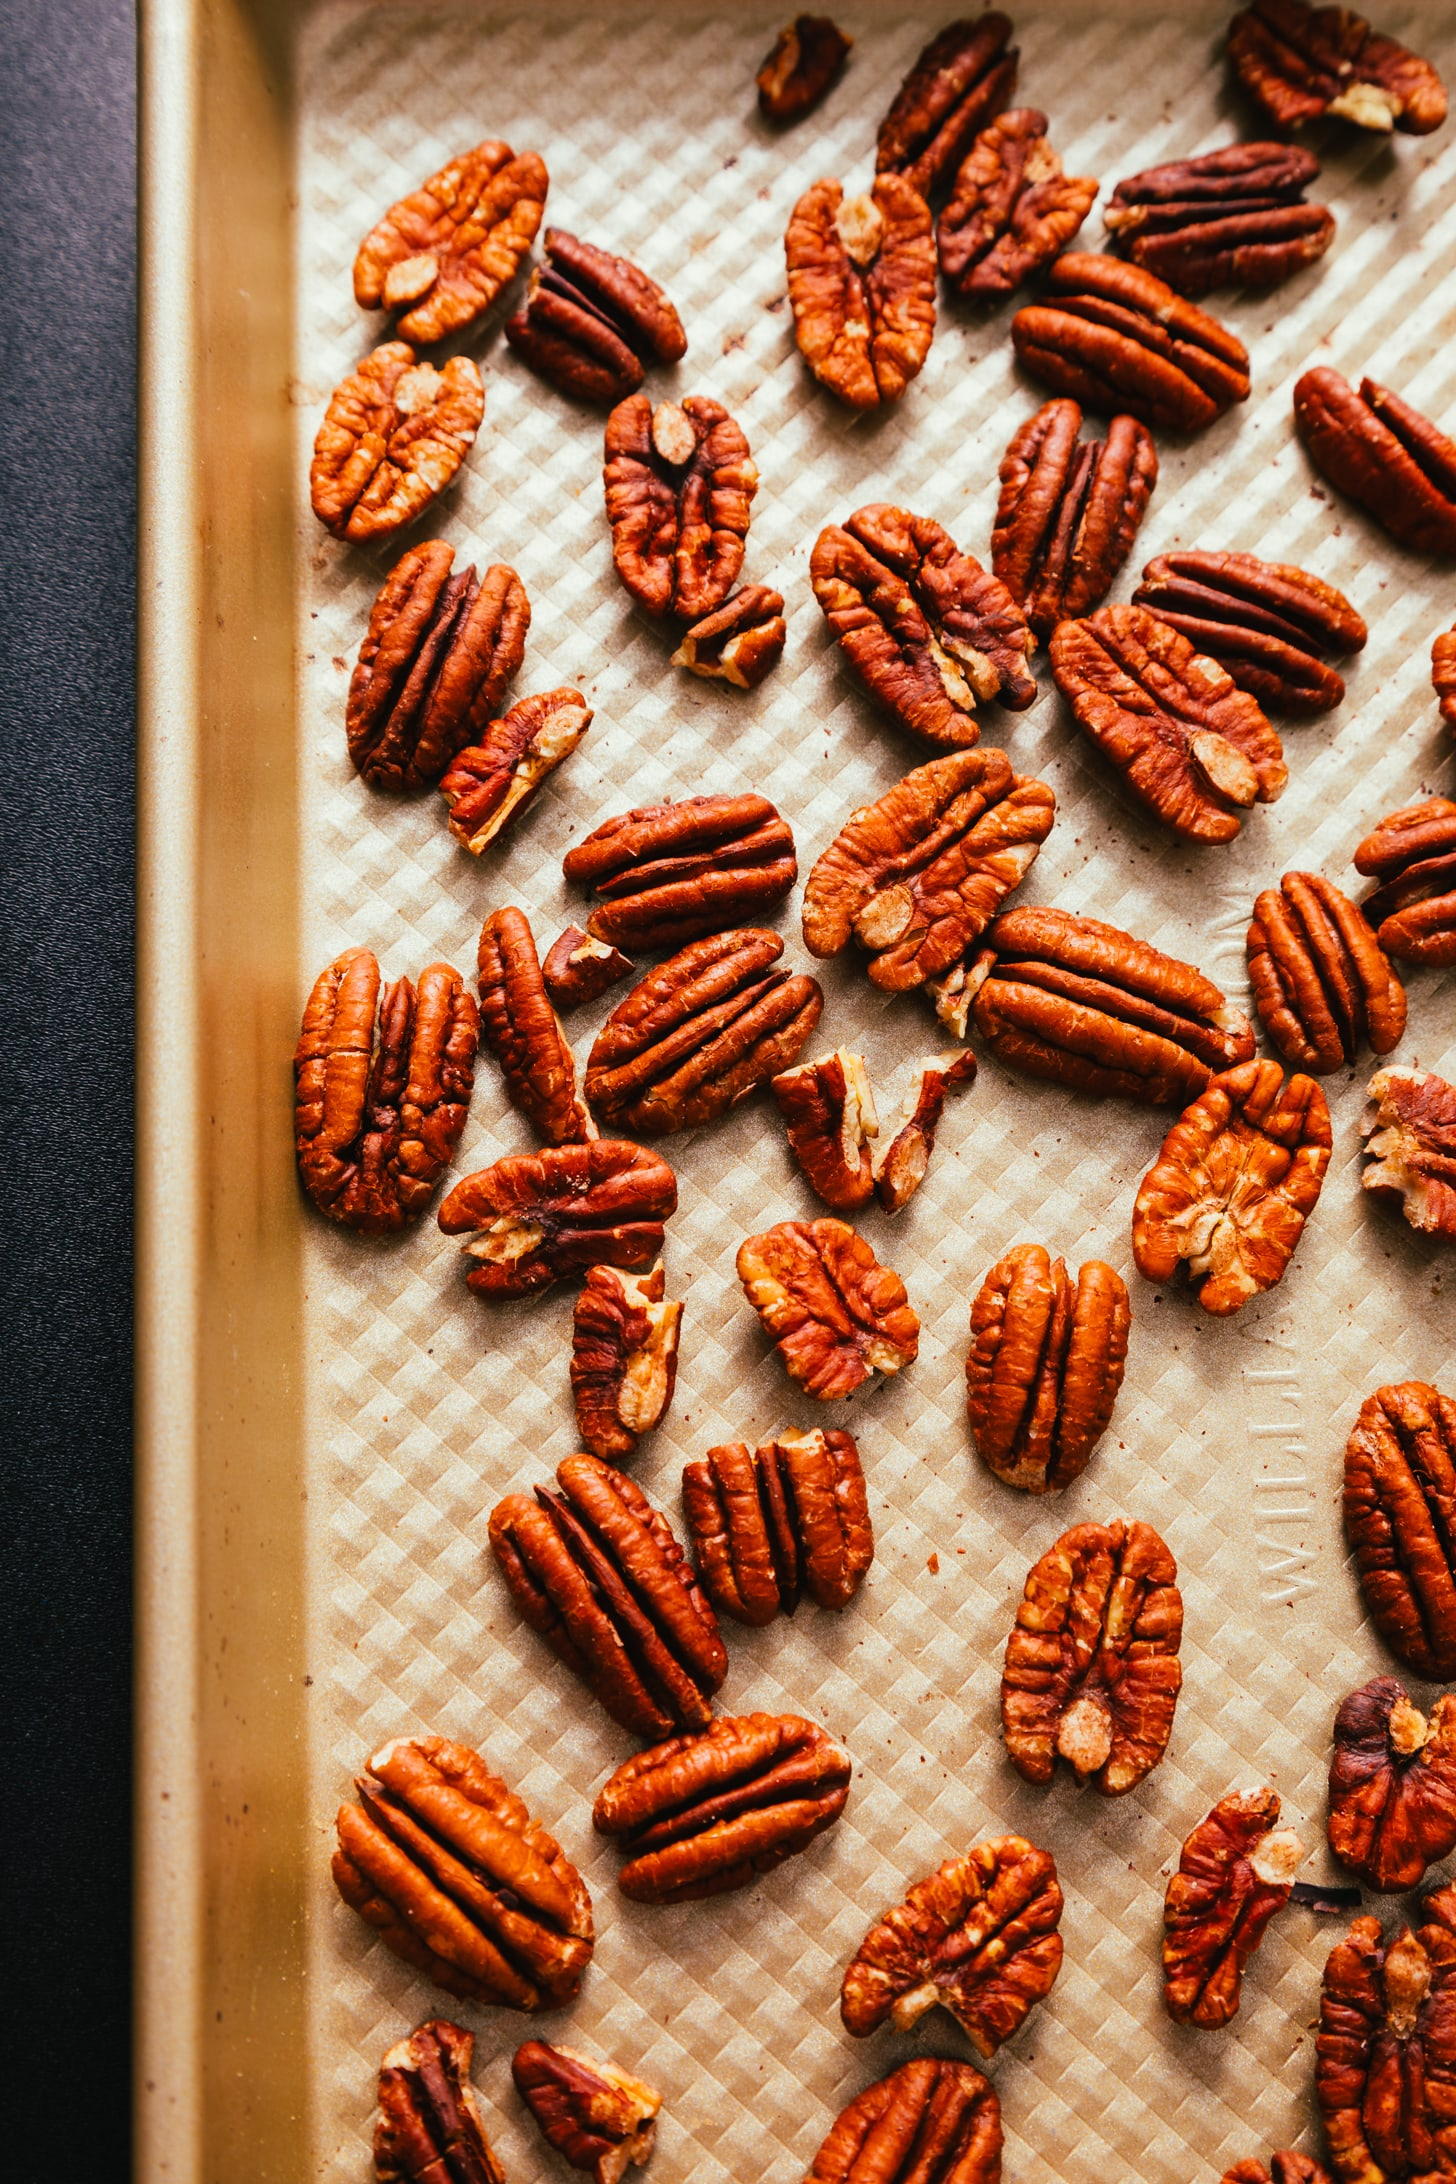 Toasting pecans on a baking sheet to make our Turtle Candies recipe